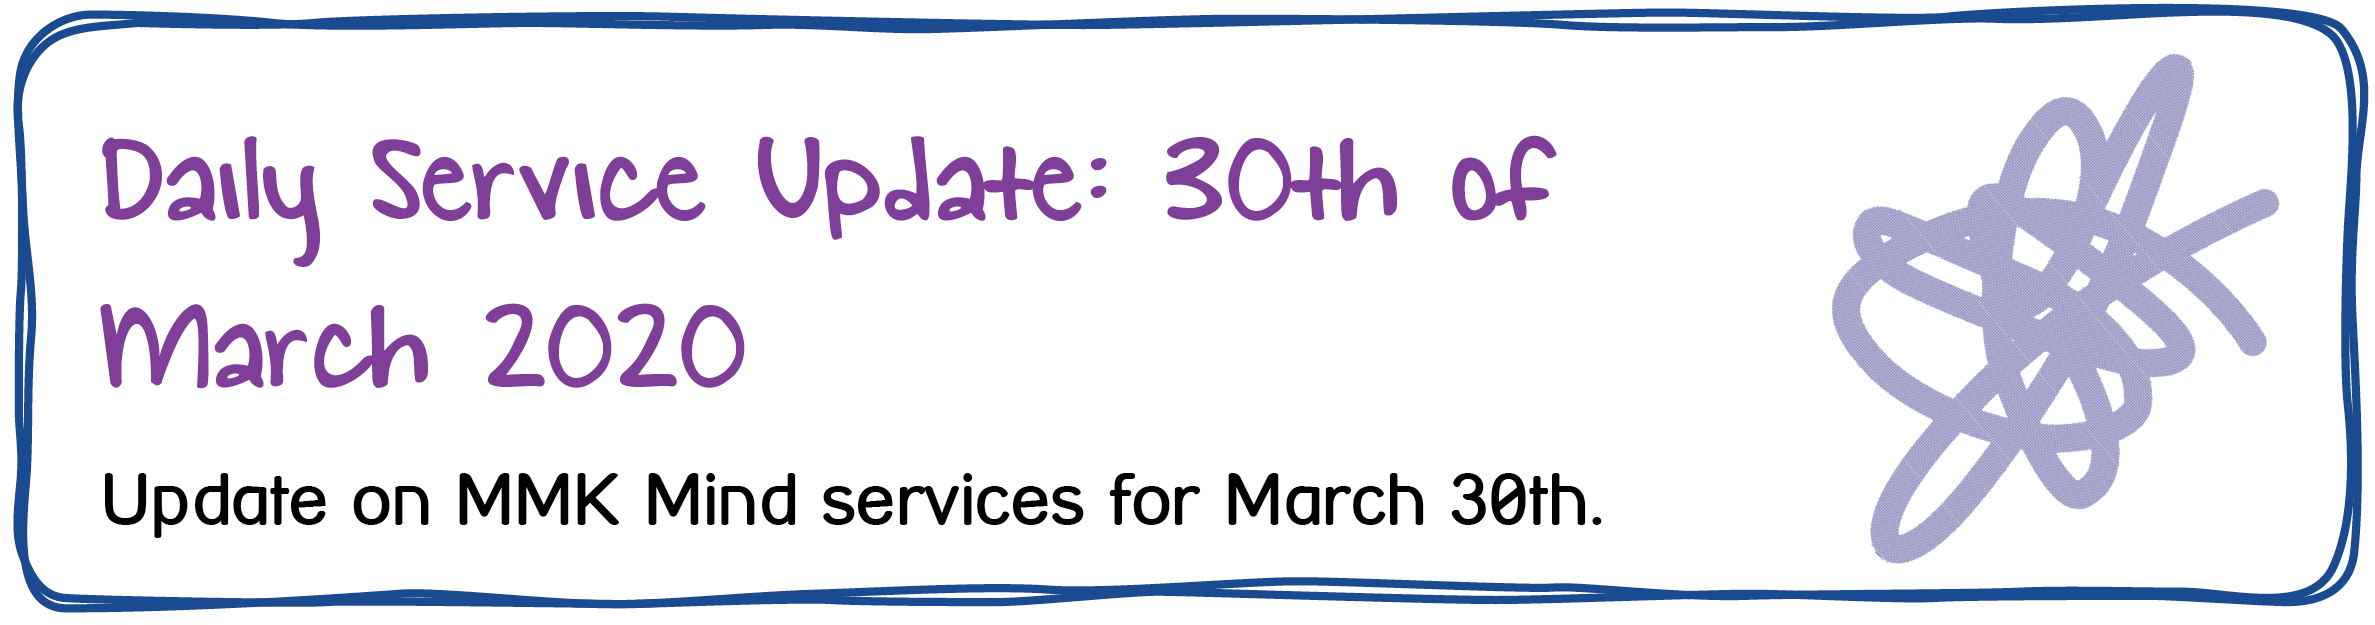 Daily Service Update: 30th of March 2020. Update on MMK Mind services for March 30th.